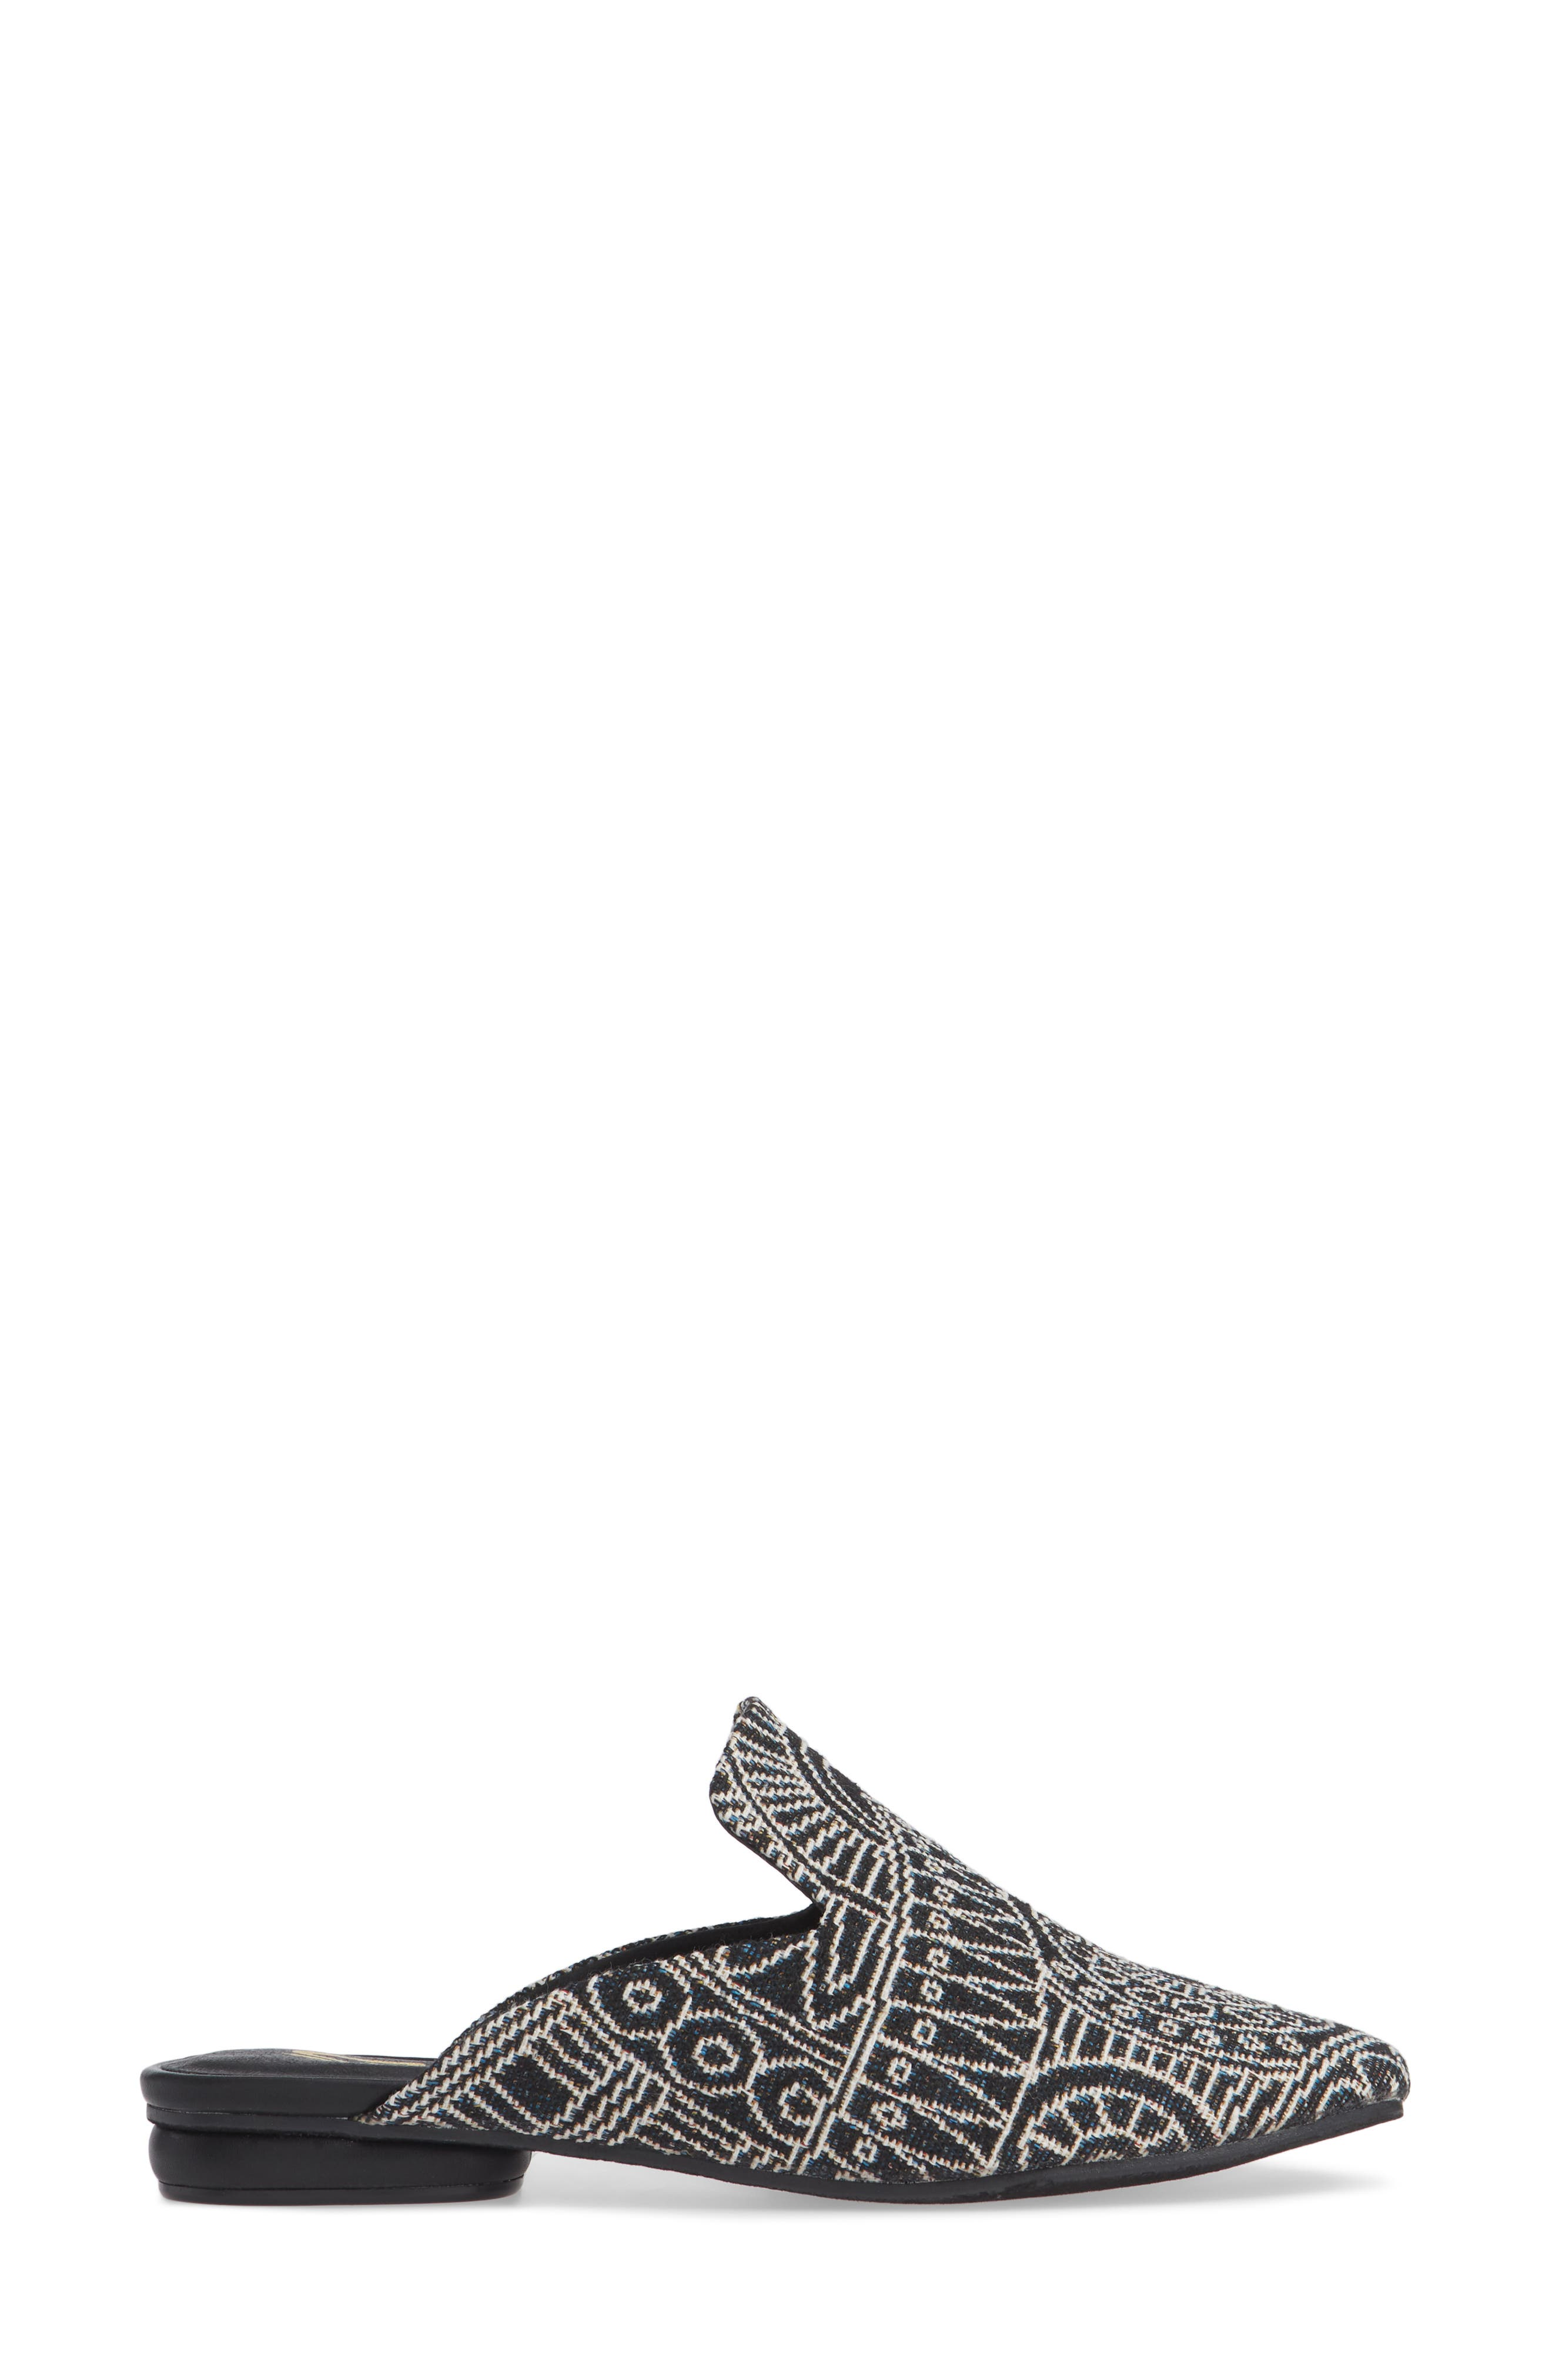 Brienne Loafer Mule,                             Alternate thumbnail 3, color,                             BLACK/ WHITE FABRIC